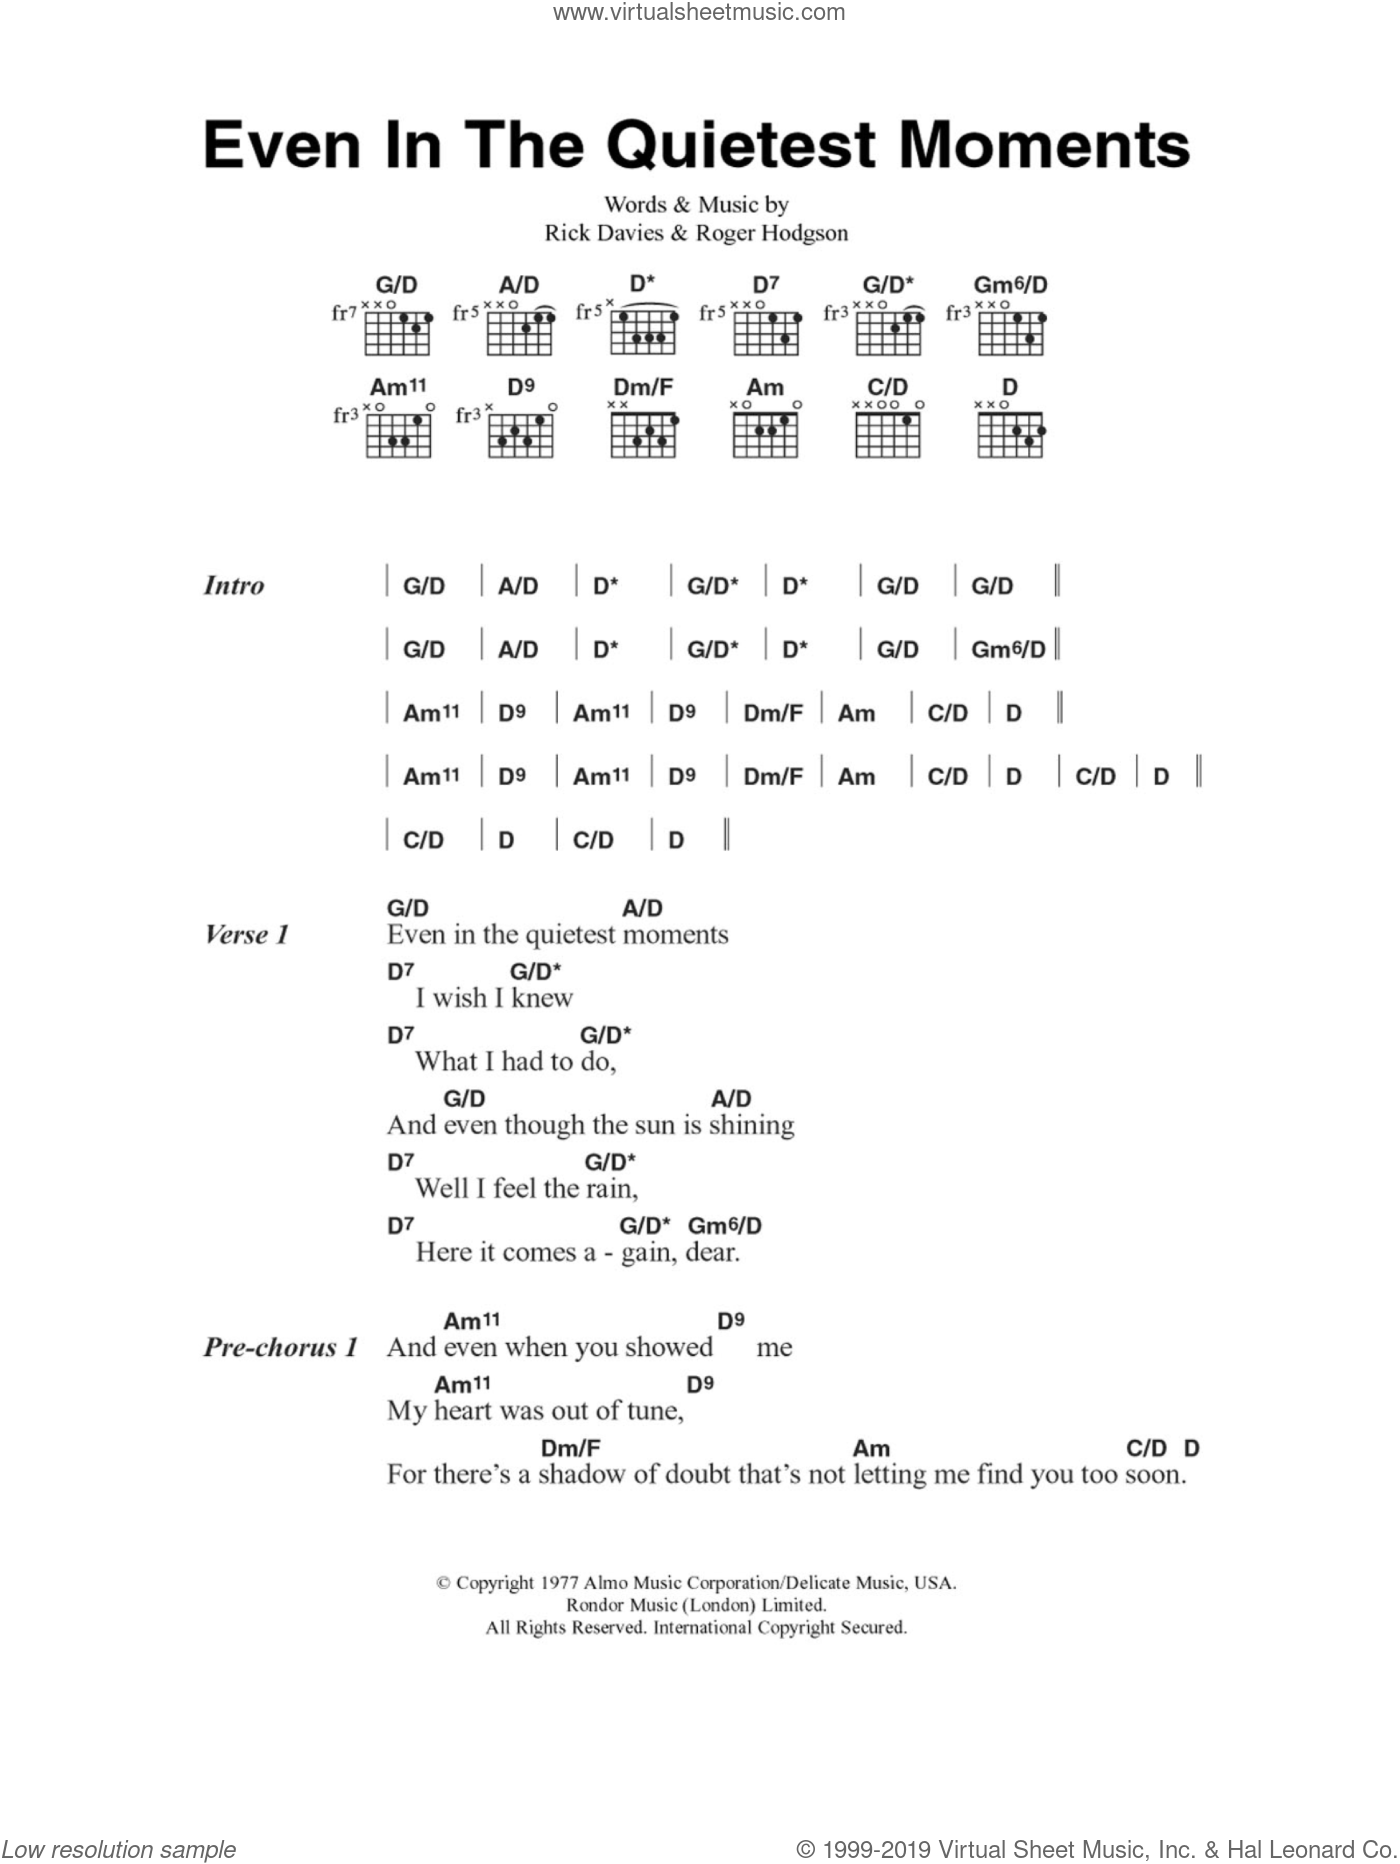 Even In The Quietest Moments sheet music for guitar (chords, lyrics, melody) by Roger Hodgson